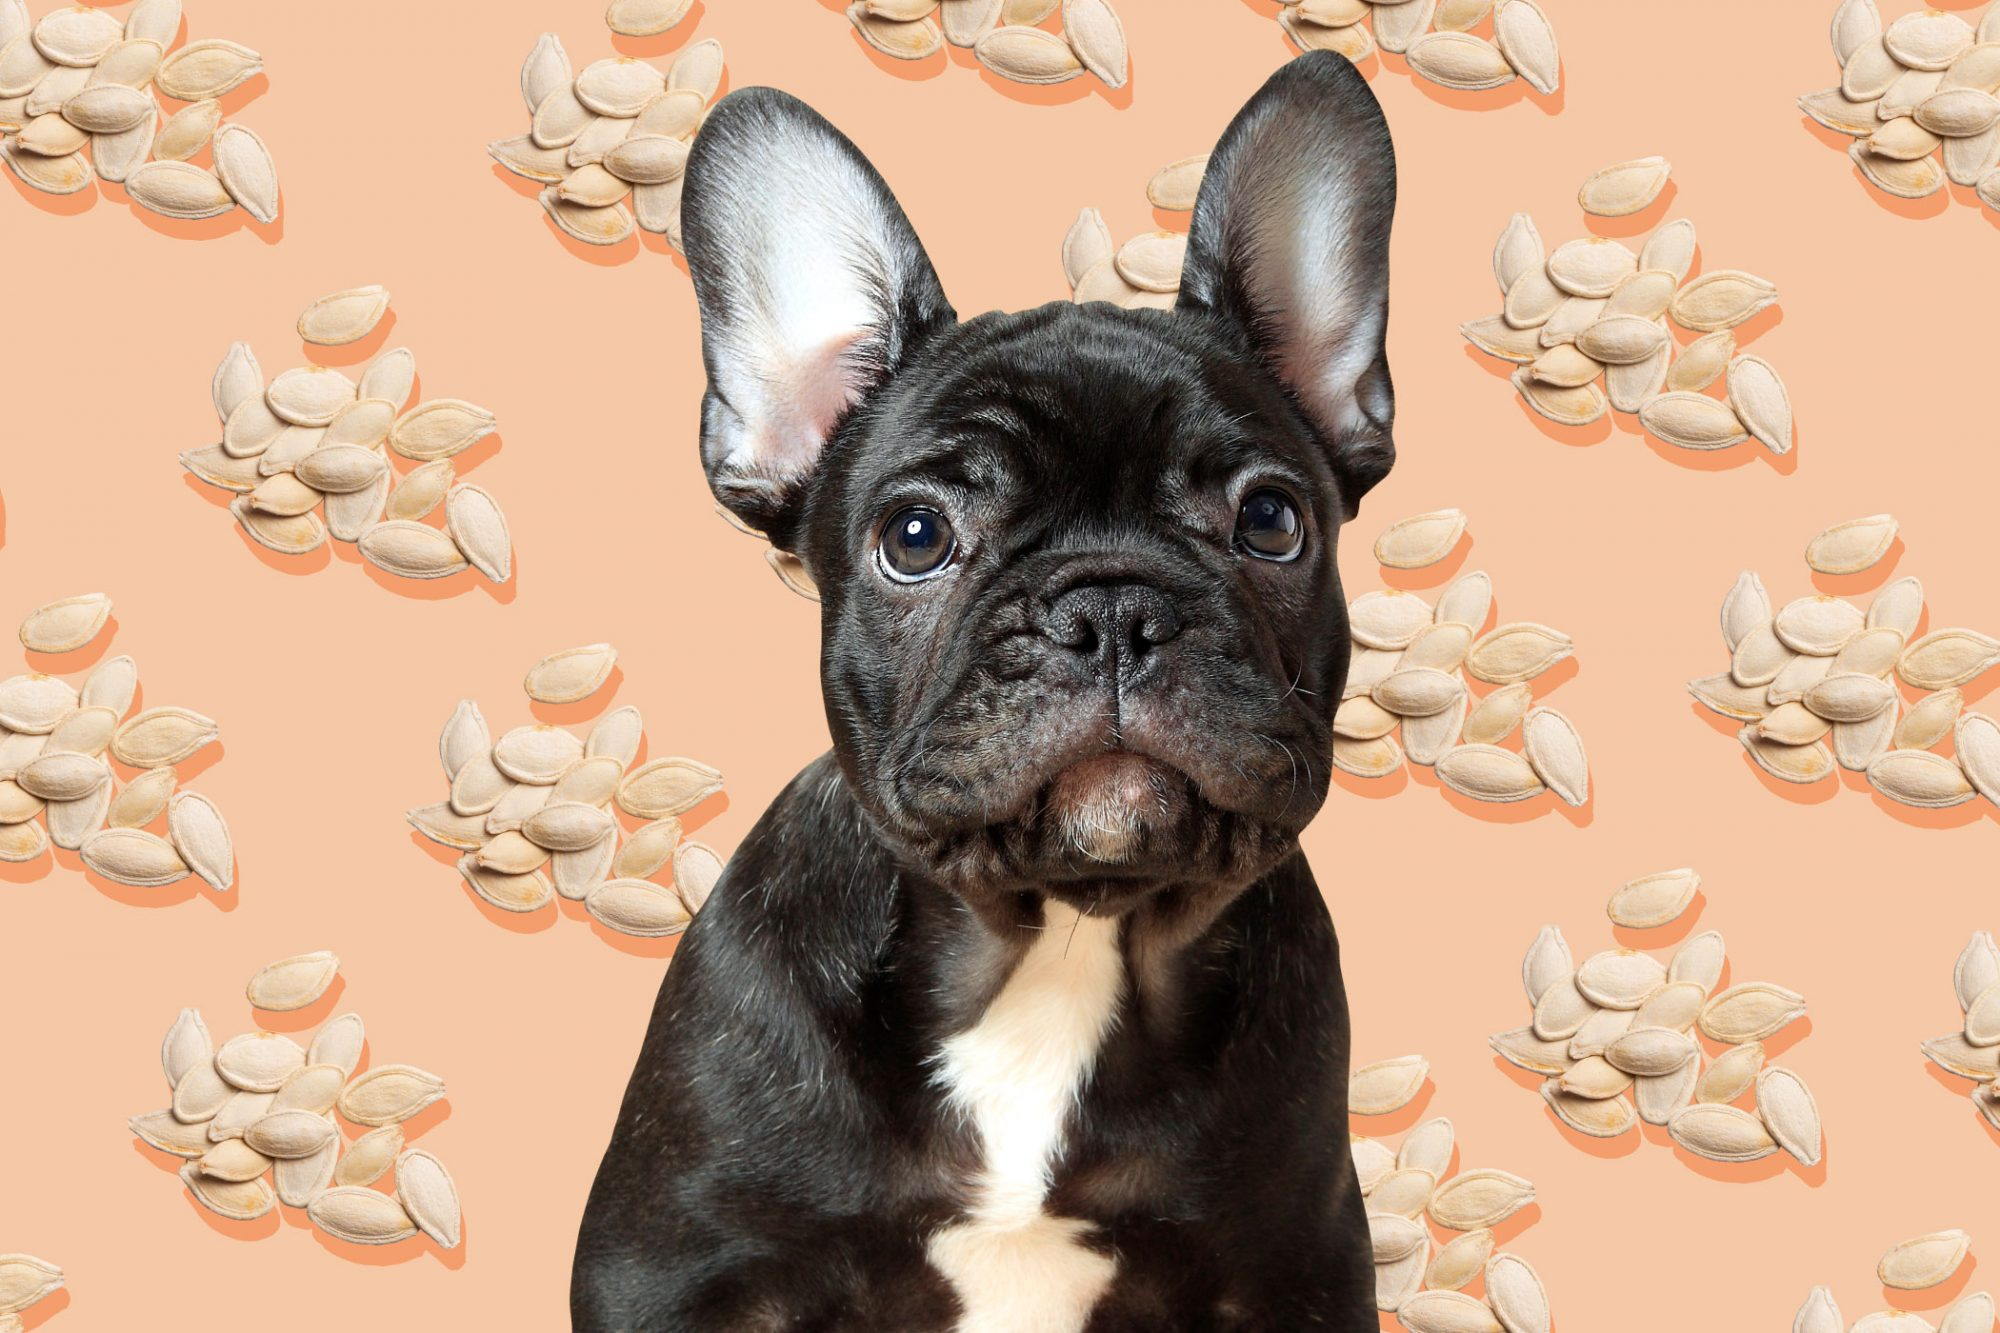 Black french bulldog sits in front of background illustration of pumpkin seeds